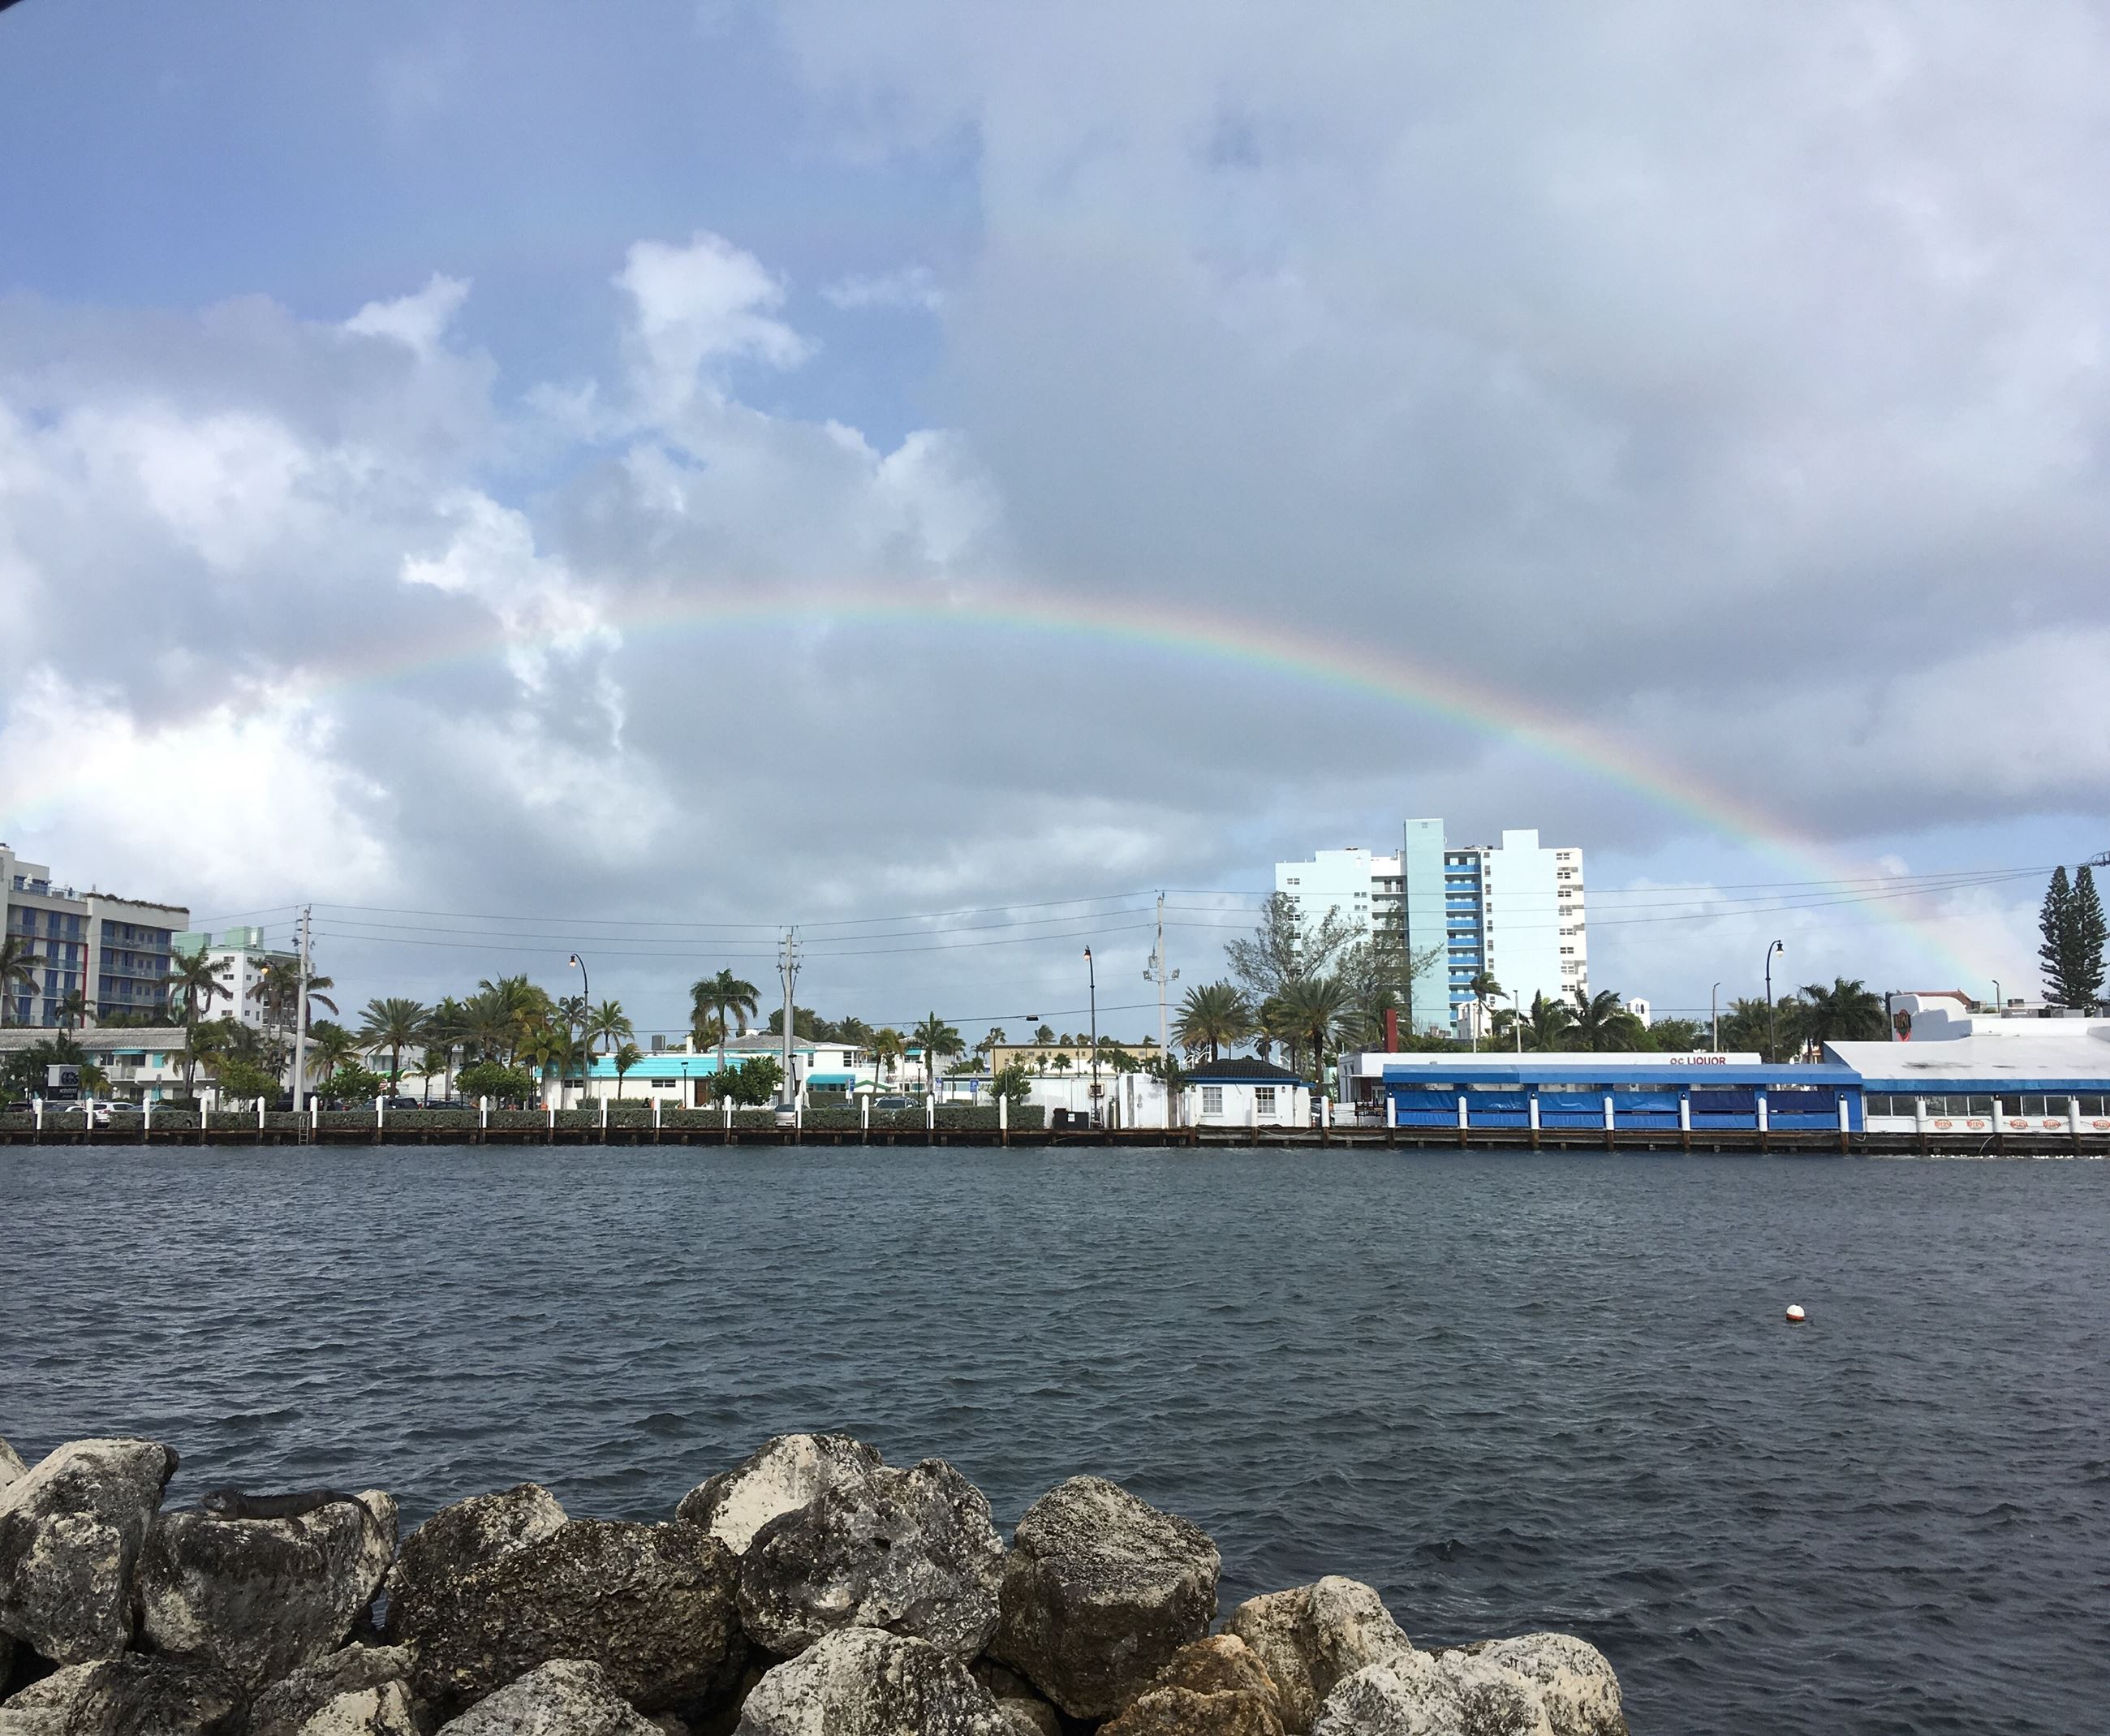 rainbow over the intracoastal water way showing buildings in a row on the other side.